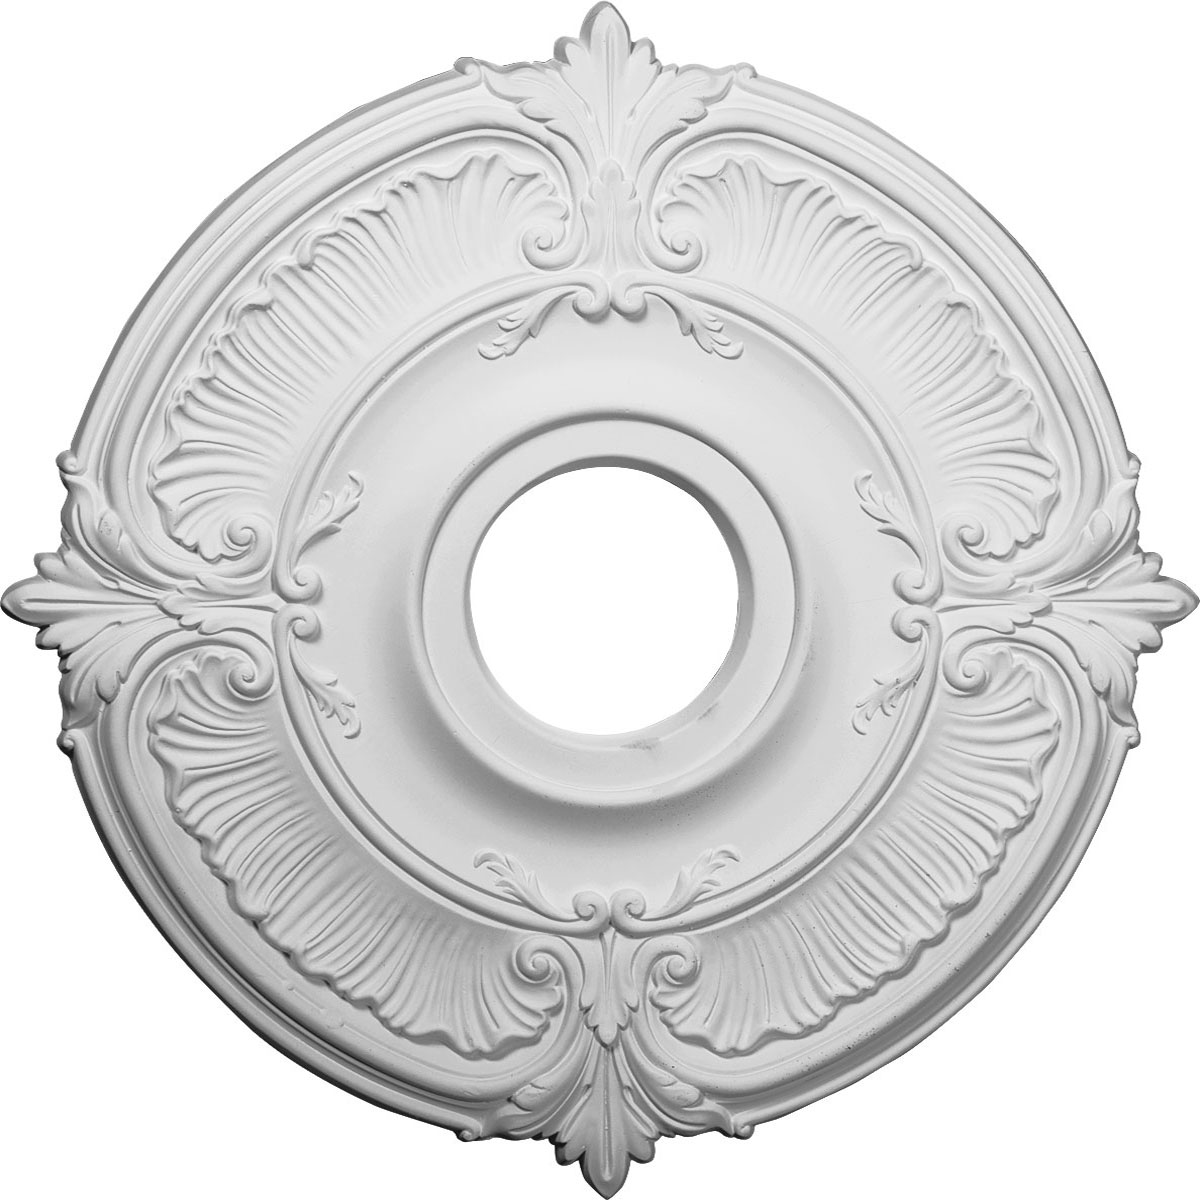 """18""""OD x 4""""ID x 5/8""""P Attica Ceiling Medallion (Fits Canopies up to 5"""")"""